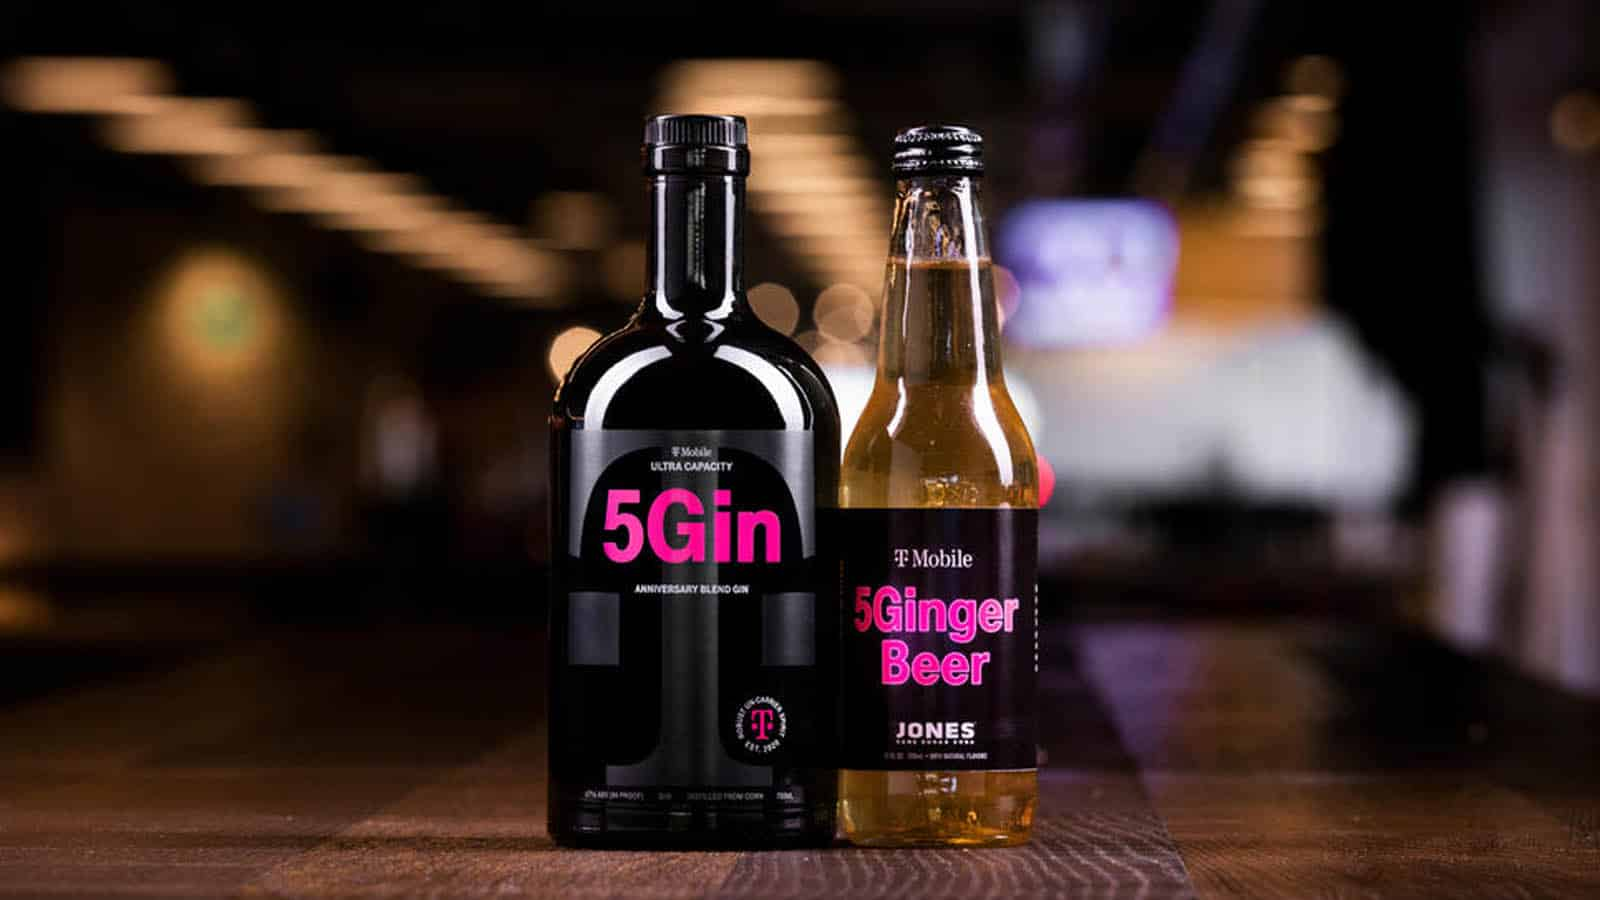 t-mobile 5gin